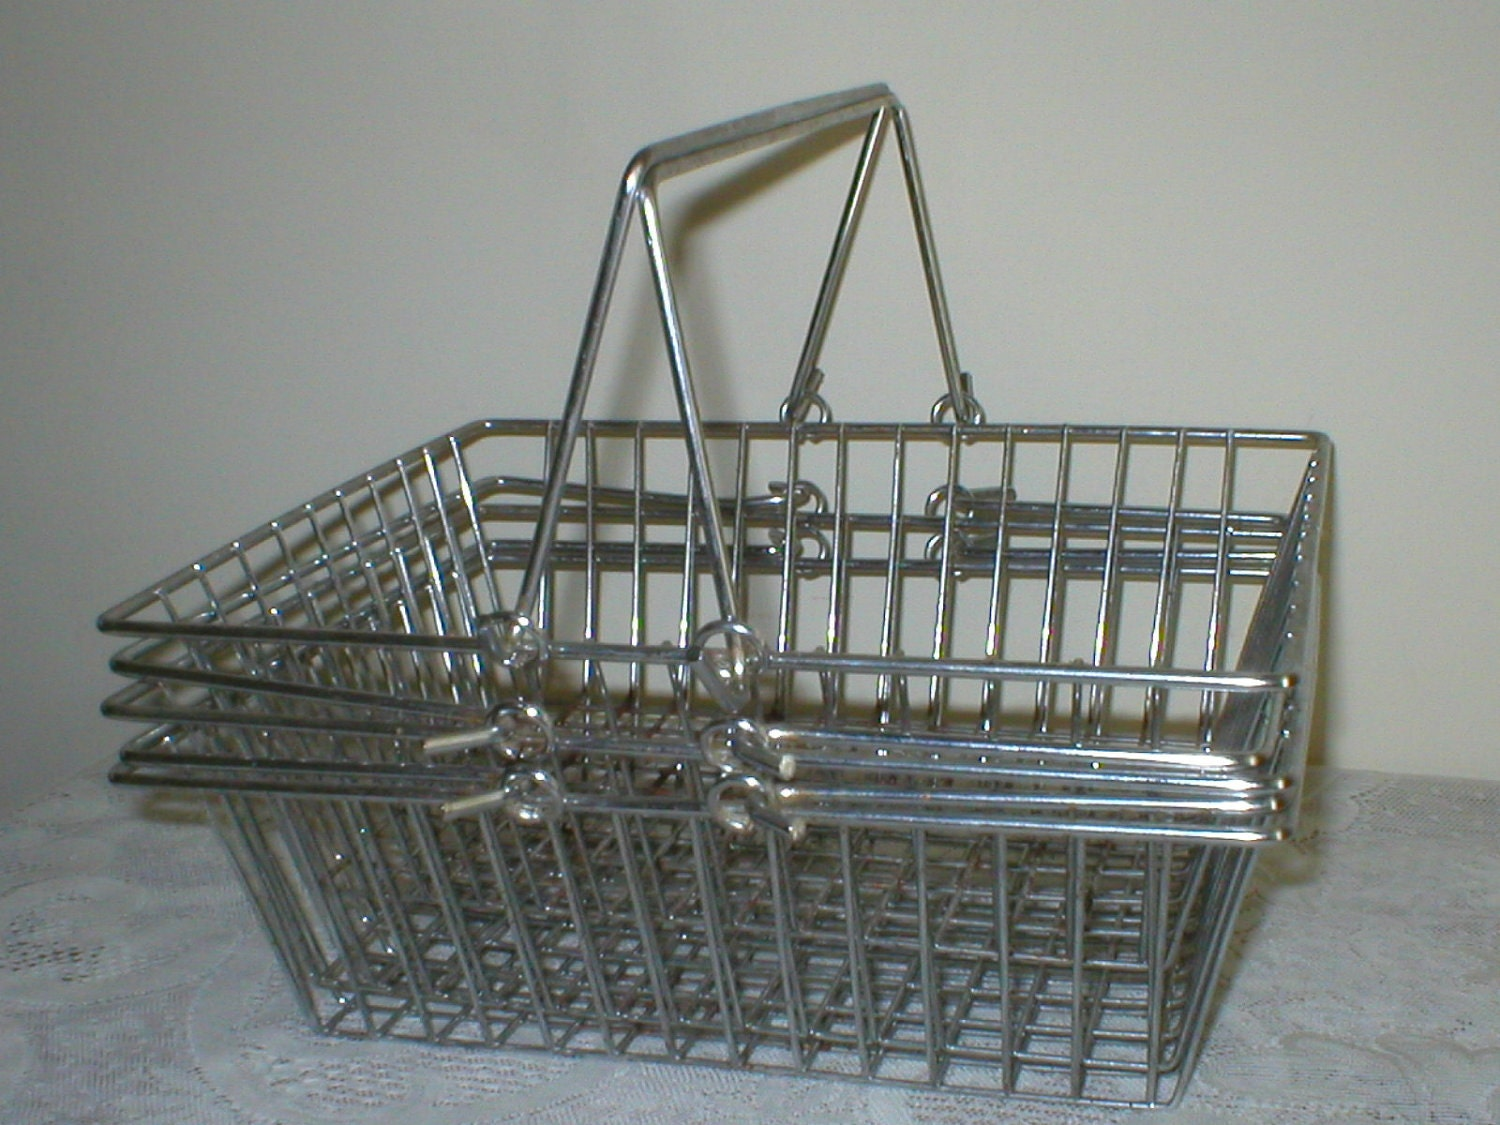 With the addition of handles, wire mesh material handling baskets are safer and easier to move from point A to point B, improving efficiency and safety. View More Info About This Product ↓ Wire Baskets.